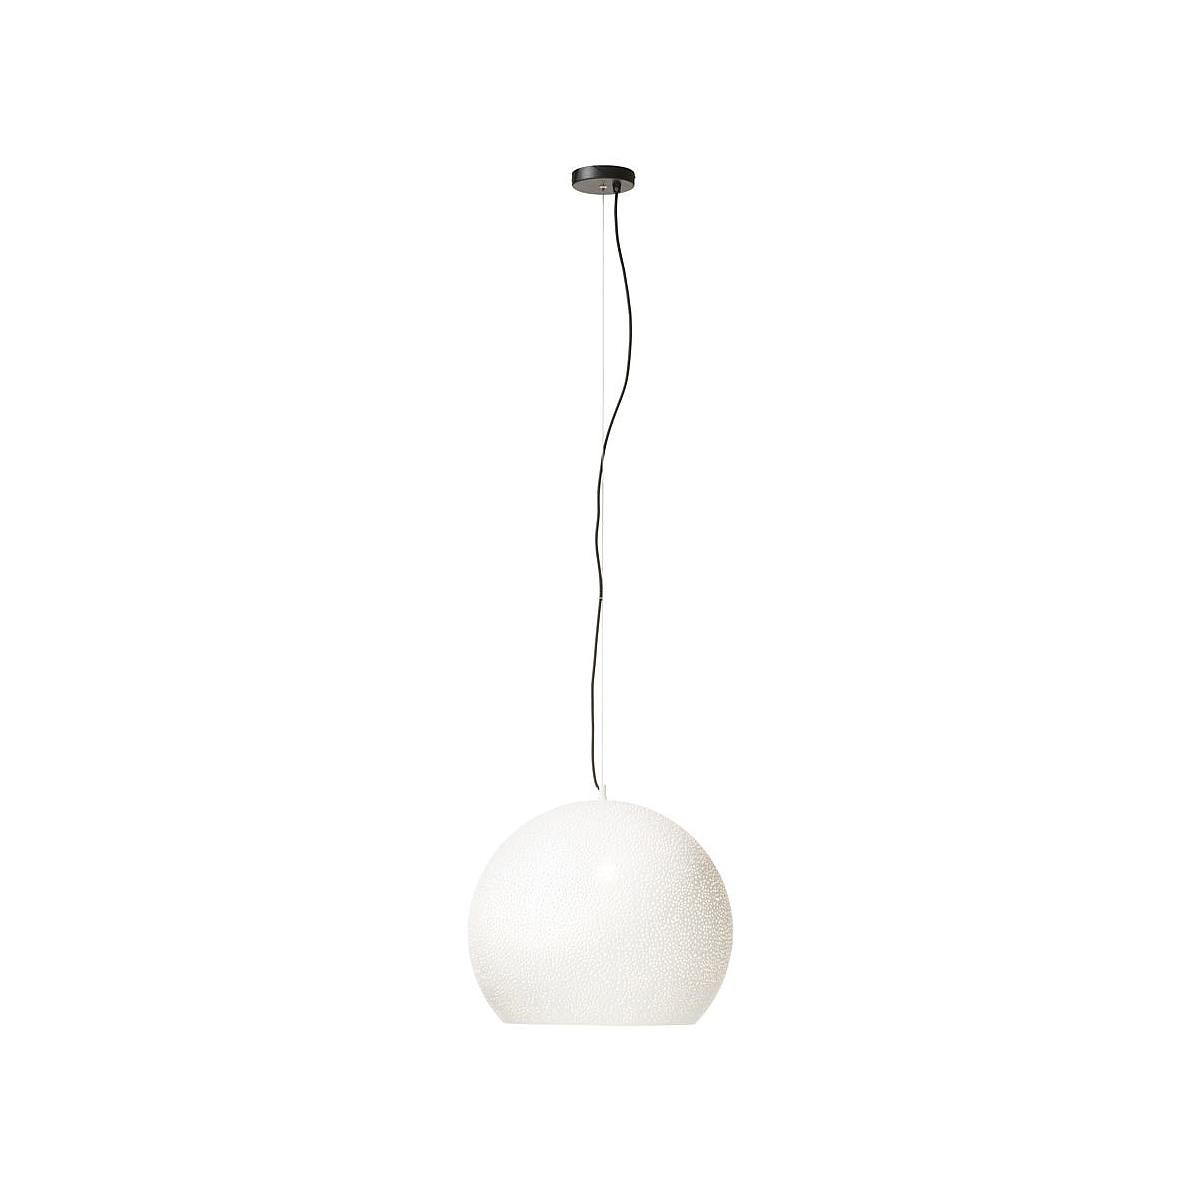 Suspension CHIARA Coco Maison 50cm